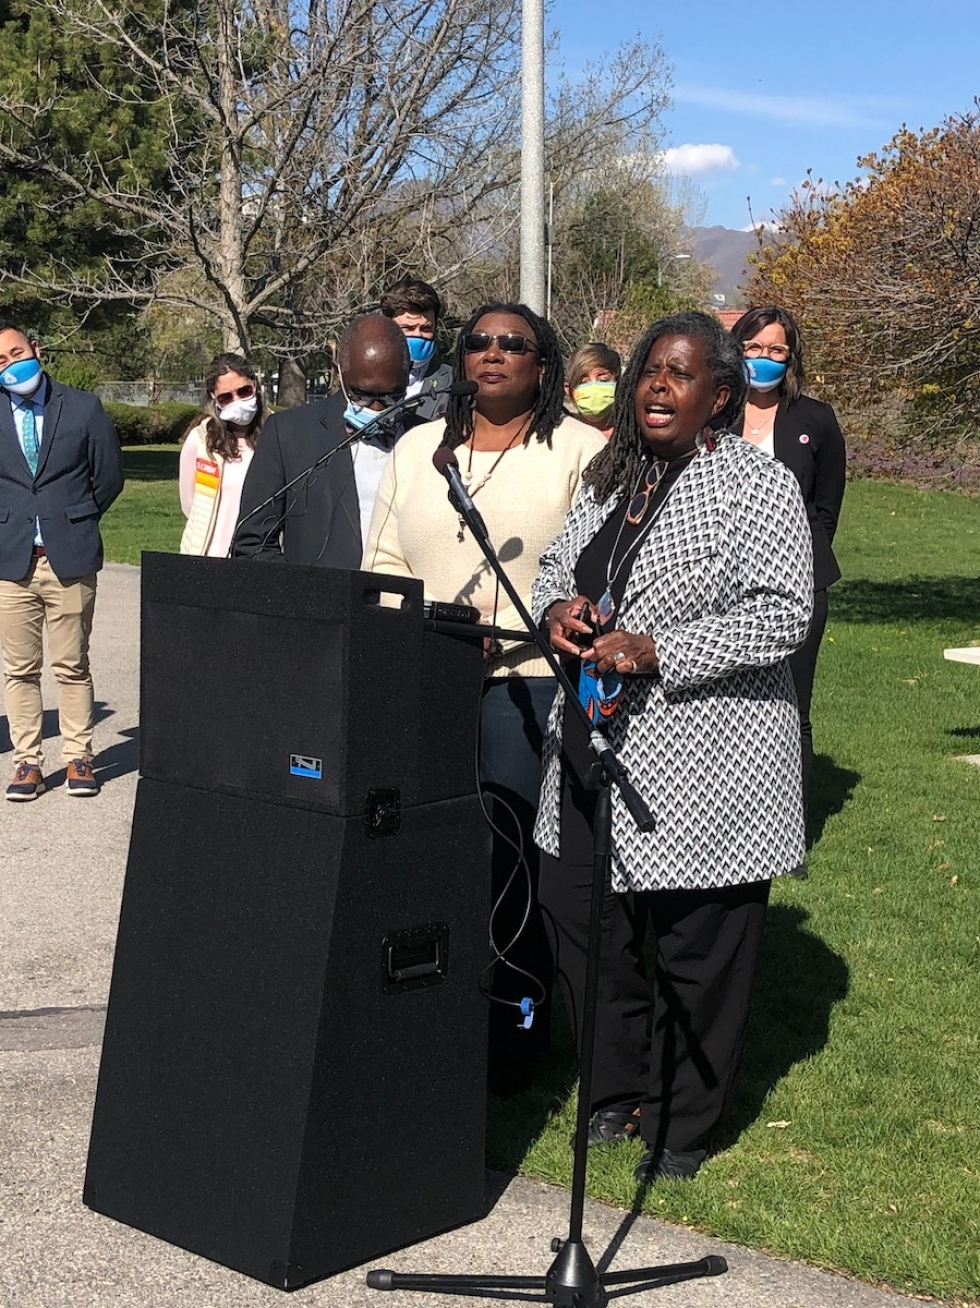 SLREP Commissioners Darlene McDonald and Carol Matthews-Shifflett make remarks at the International Peace Gardens on Tuesday, April 20, 2021 following the verdict of the trial for the murder of George Floyd.